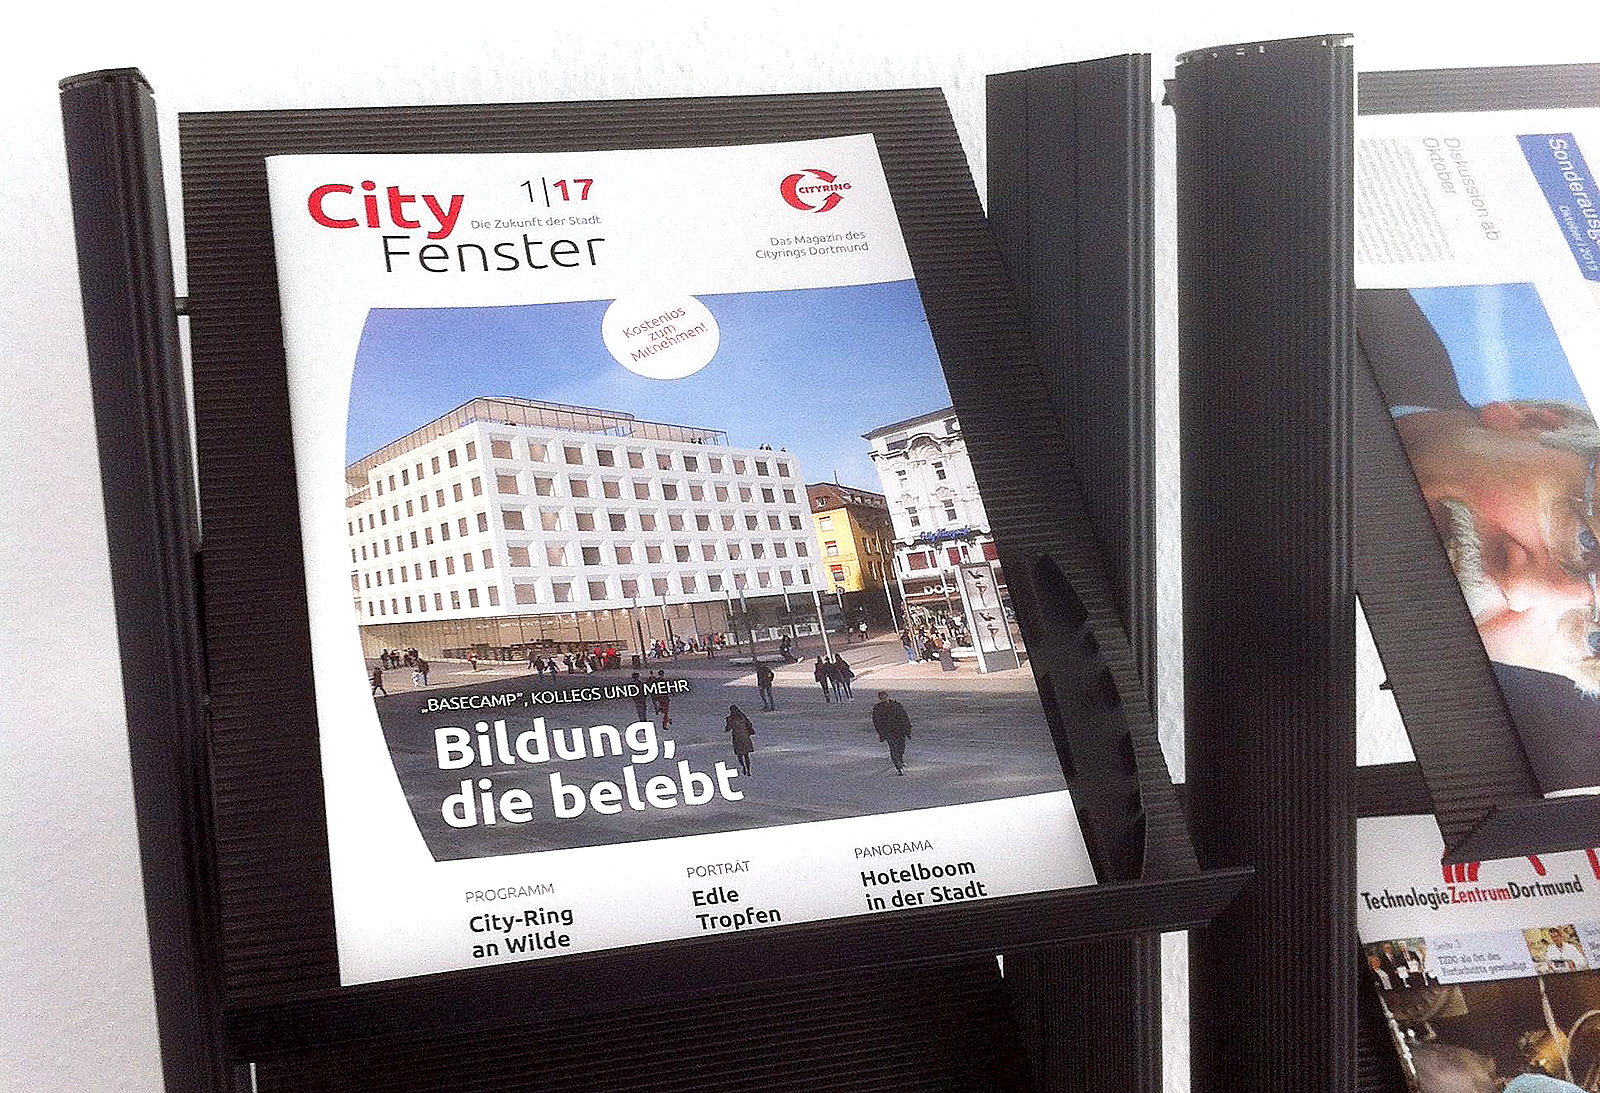 news-cityfenster-1-17-2